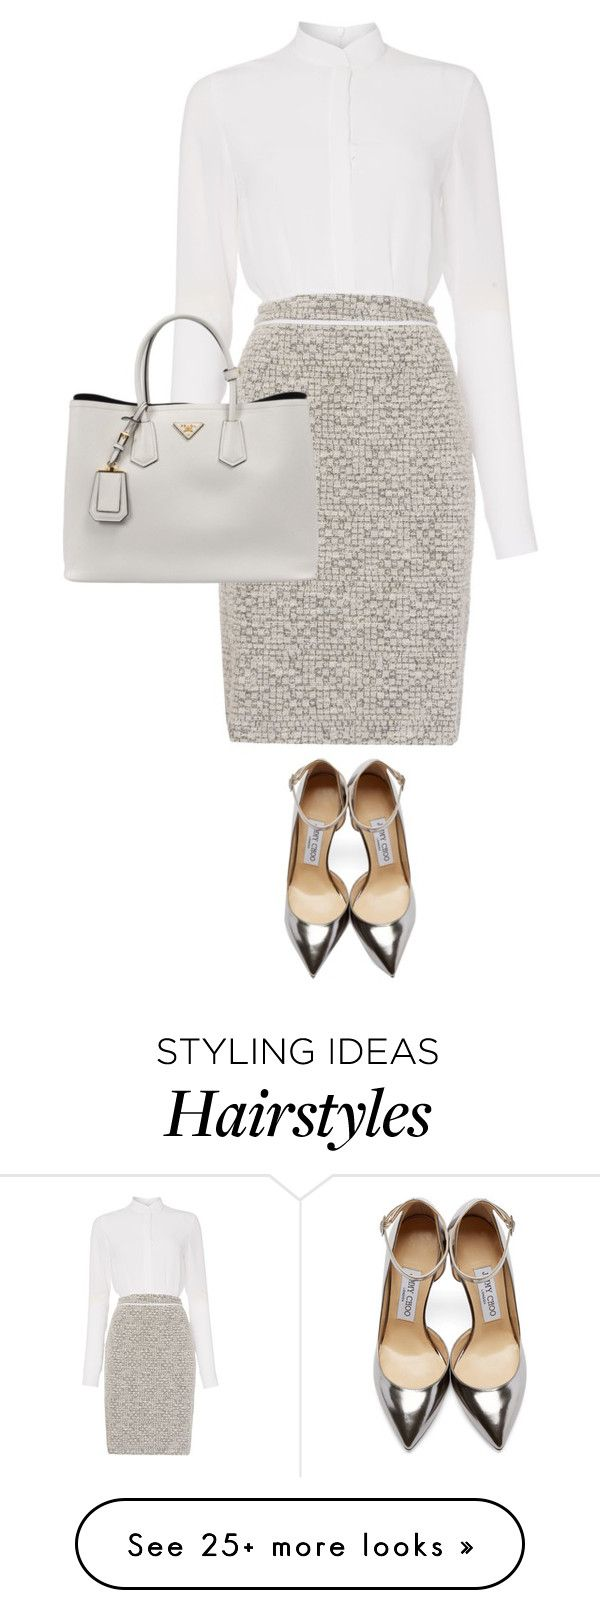 """""""Add hair bun and Clark Kent glasses"""" by bella8 on Polyvore featuring HUGO, Jimmy Choo, Prada, women's clothing, women's fashion, women, female, woman, misses and juniors"""